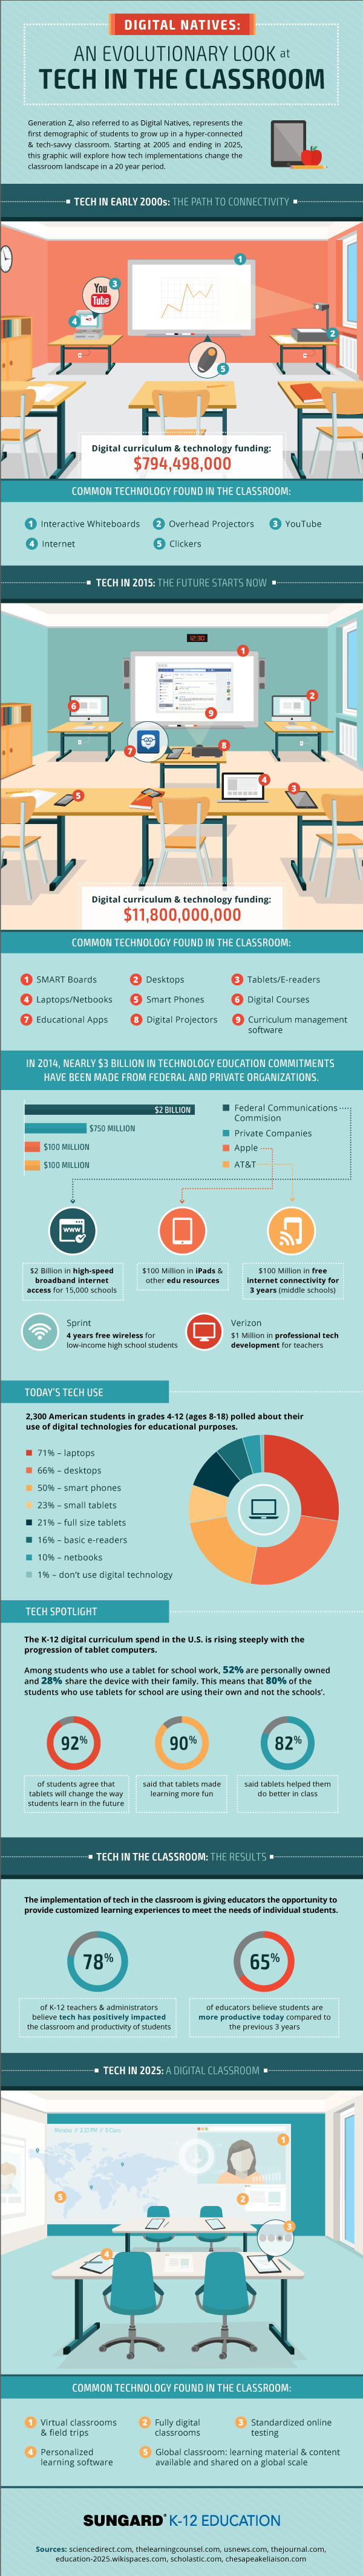 This Cool Infographic Maps the Evolution of Classroom Tech ...